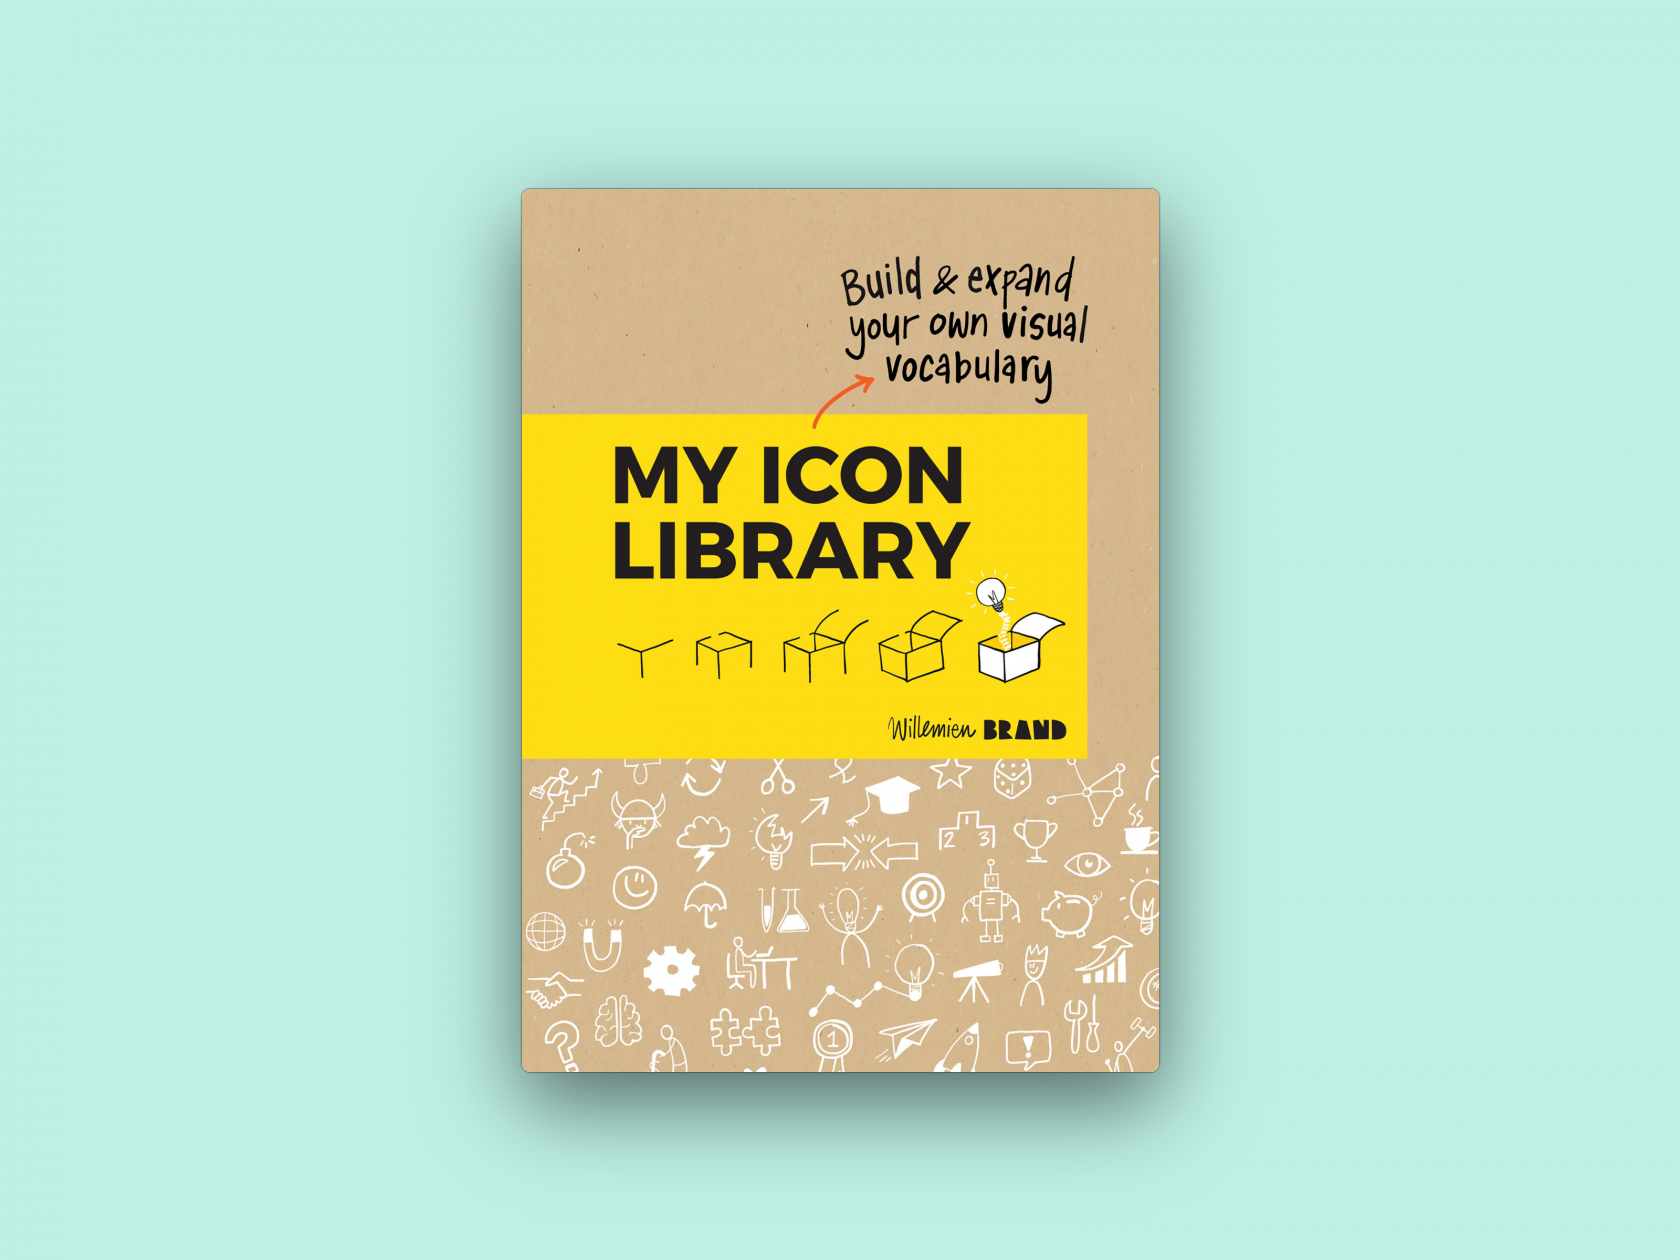 My Icon Library looks to 'empower readers' in visual thinking